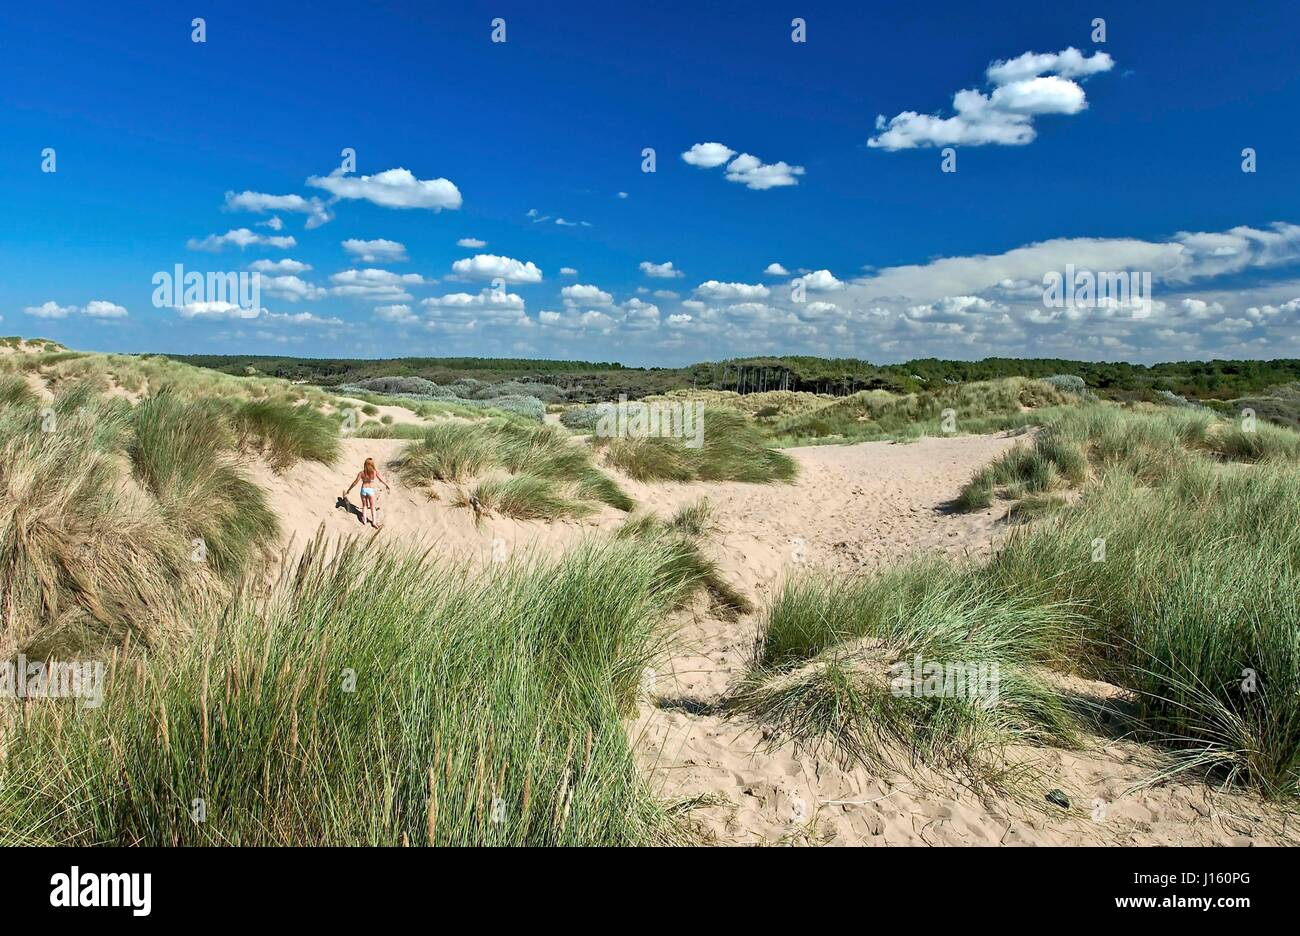 Formby Point and sand dunes. - Stock Image